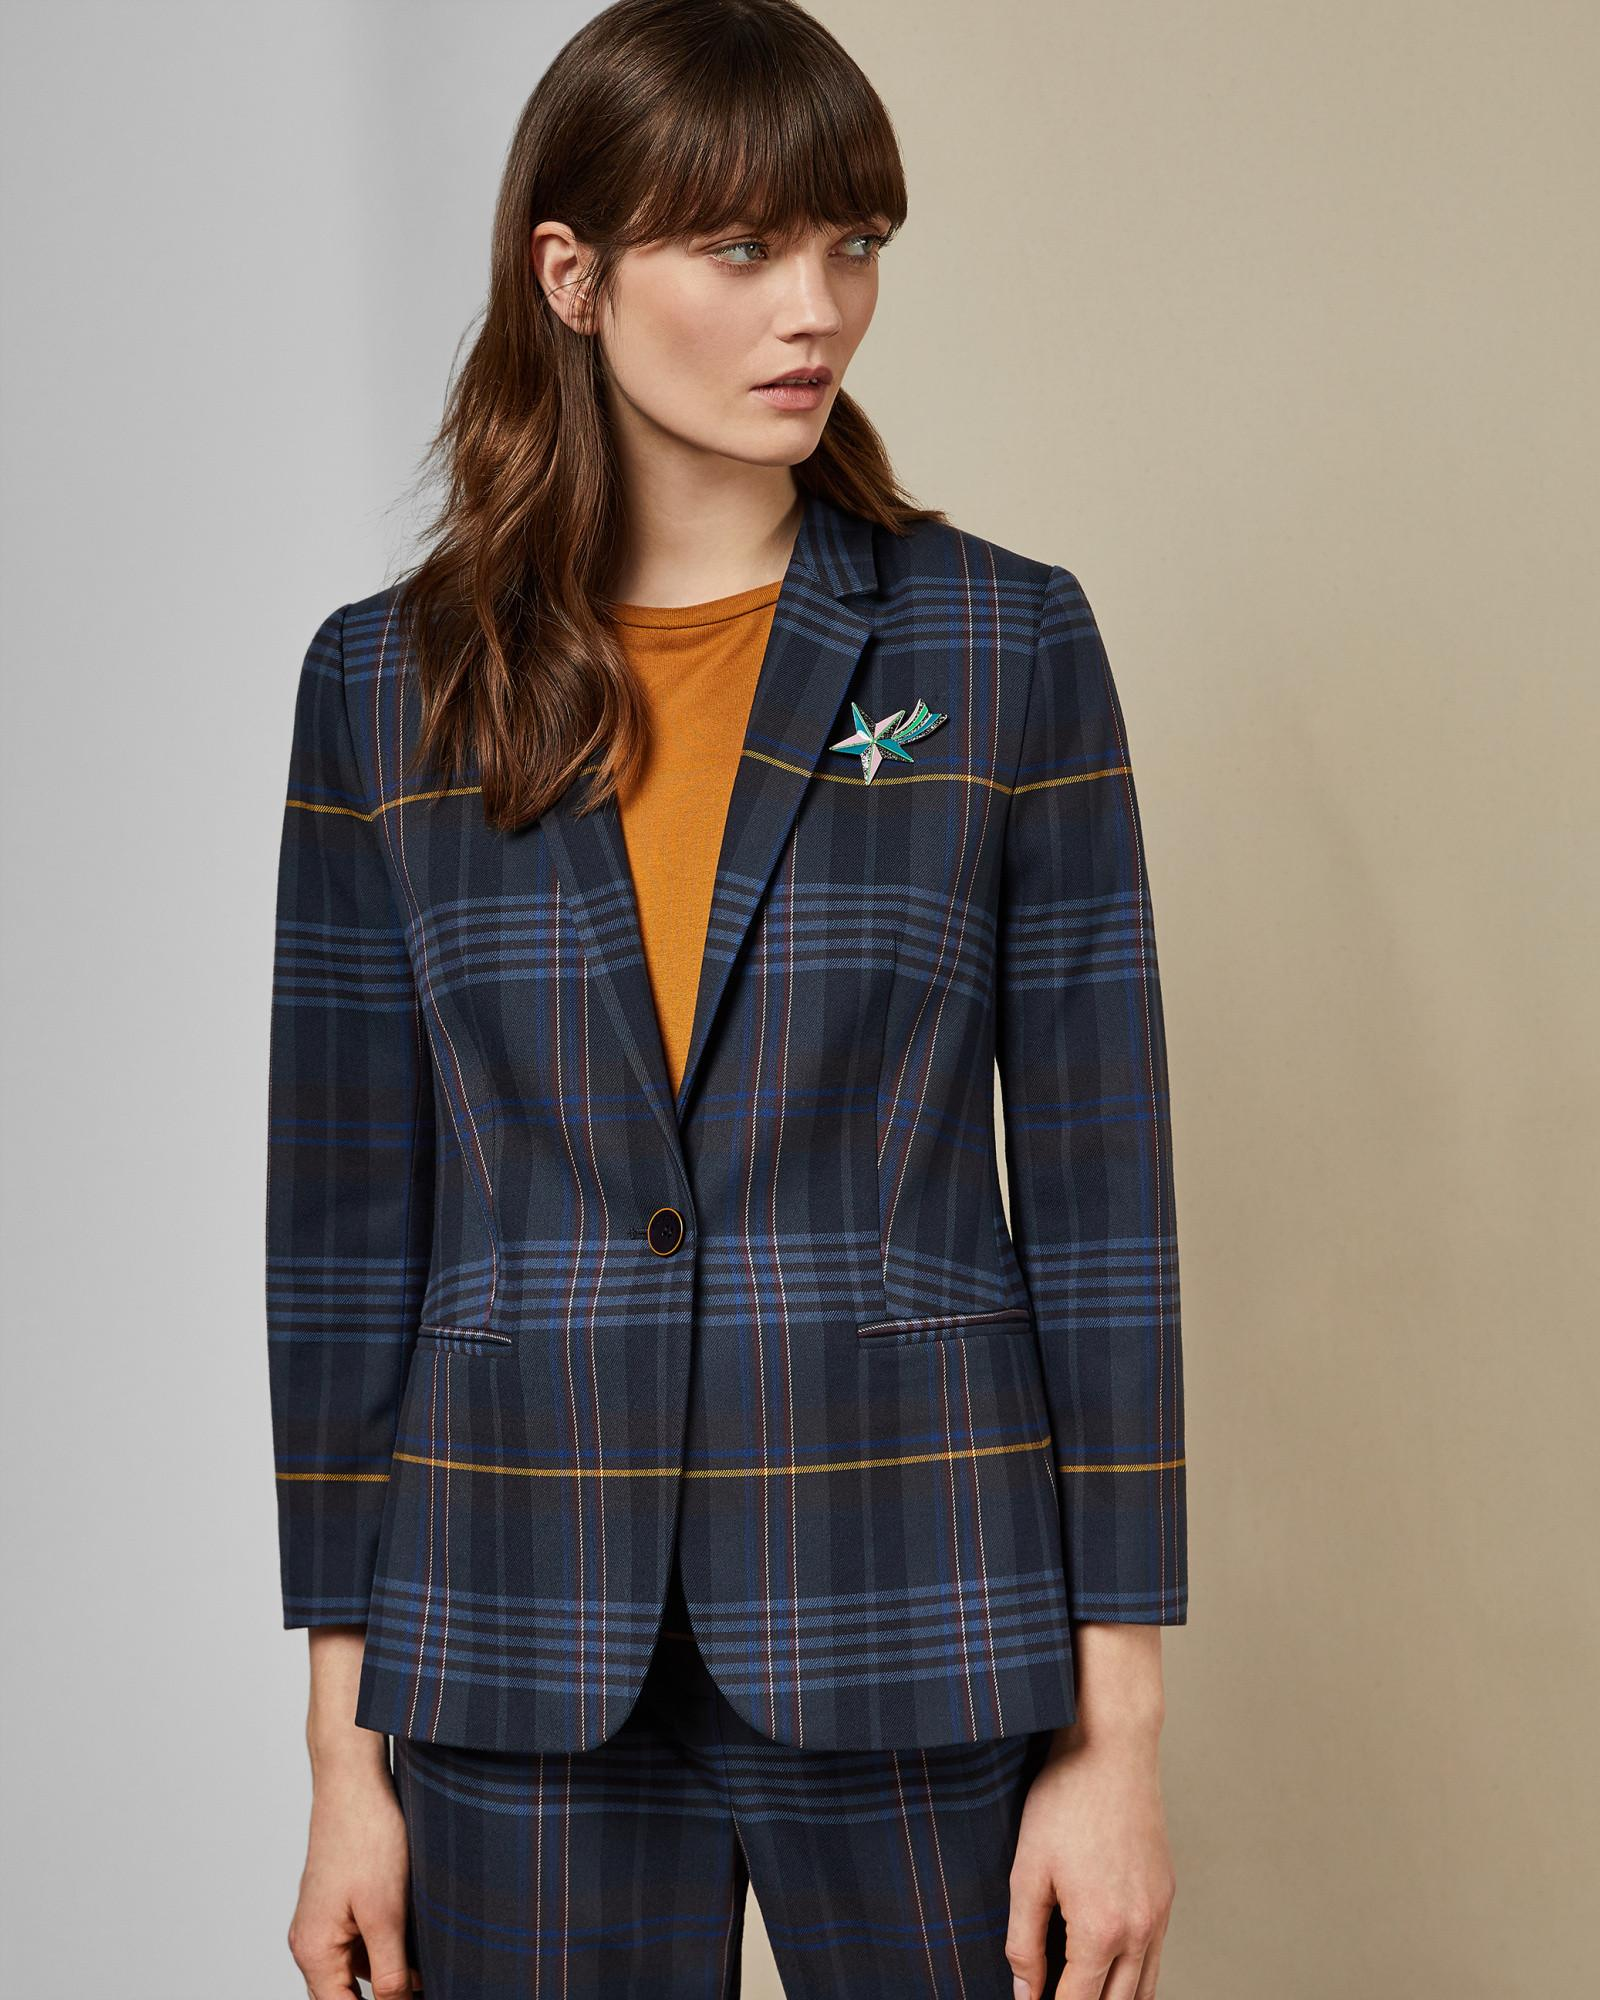 9377ee1fa Ted Baker Robot Check Blazer in Blue - Lyst